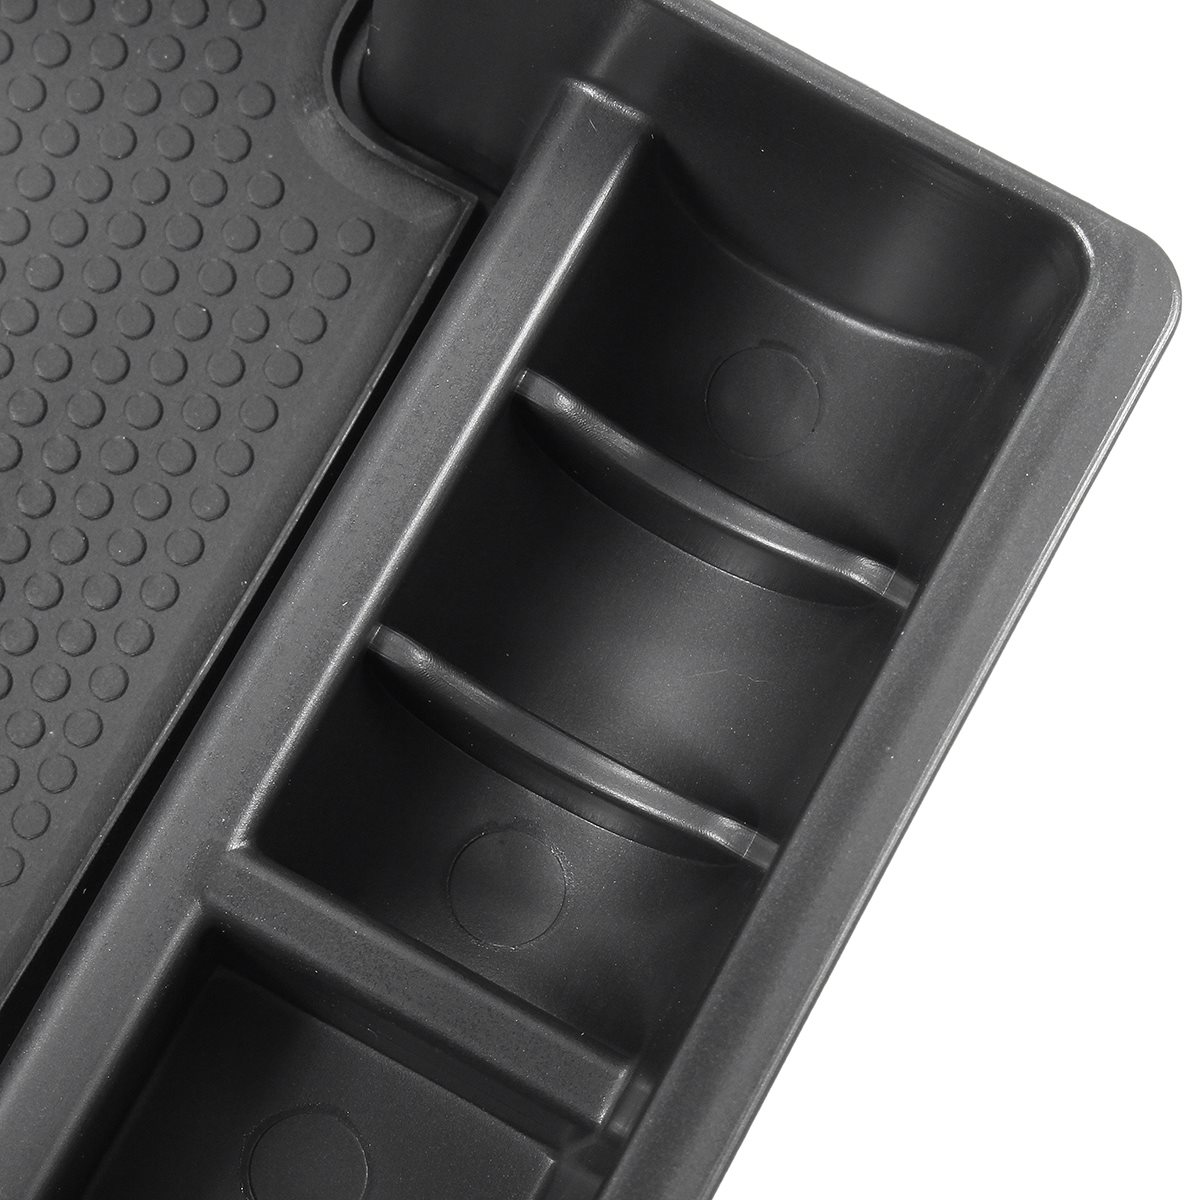 Black Car Armrest Container Central Storage Pallet Box Case For Mitsubishi Outlander 2013 2014 2015 2016 Stowing Tidying